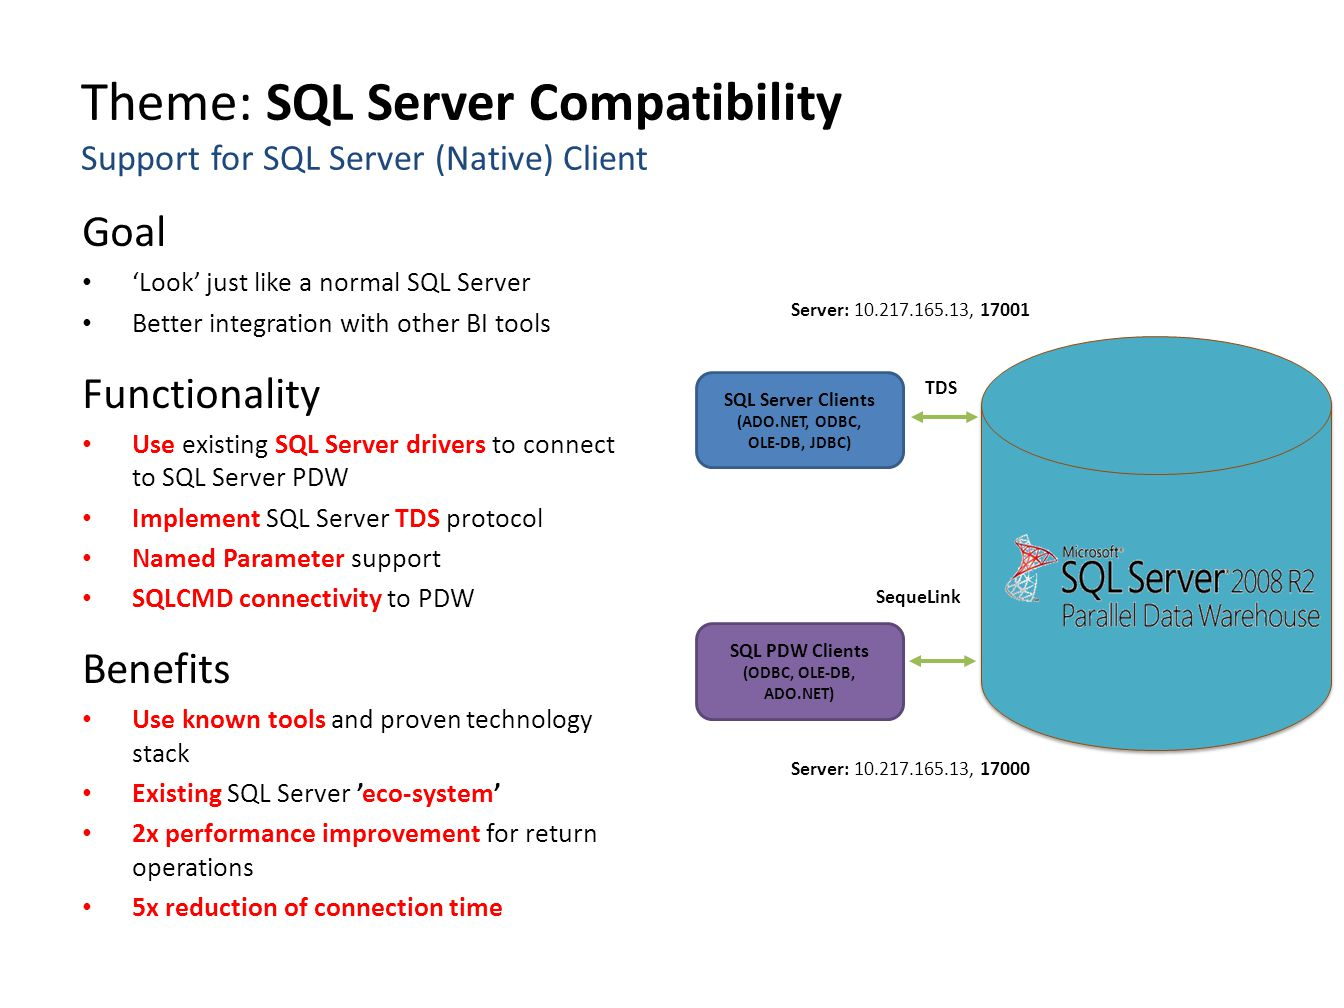 Theme: SQL Server Compatibility Support for SQL Server (Native) Client Goal 'Look' just like a normal SQL Server Better integration with other BI tool